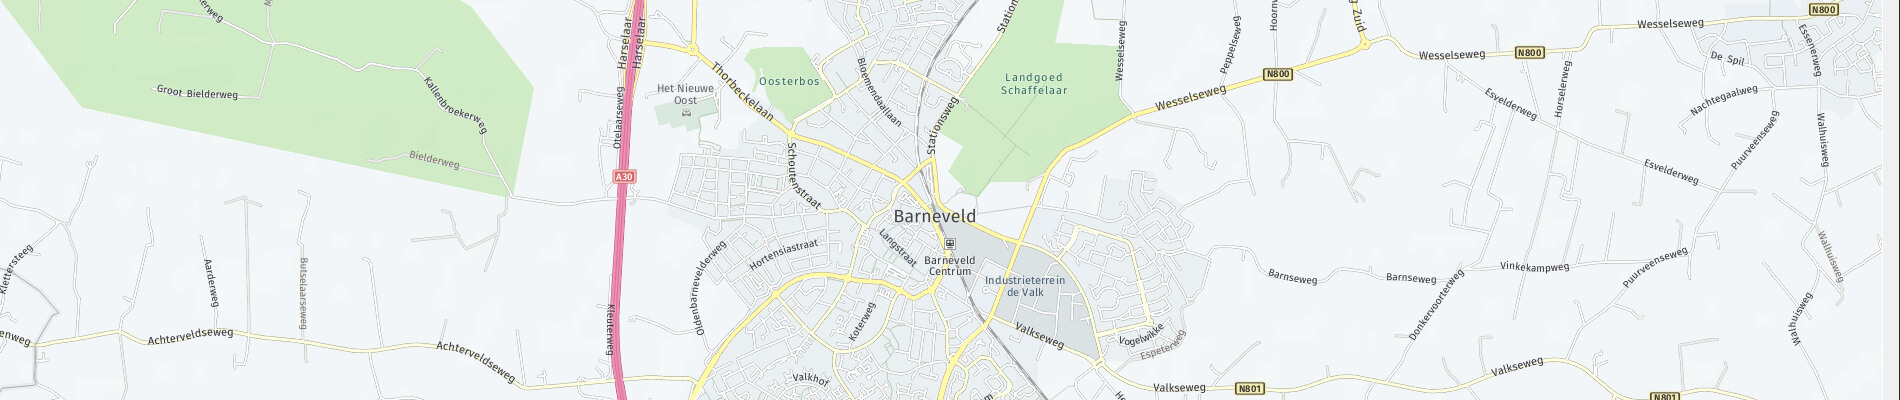 assets/images/cities/barneveld.jpg